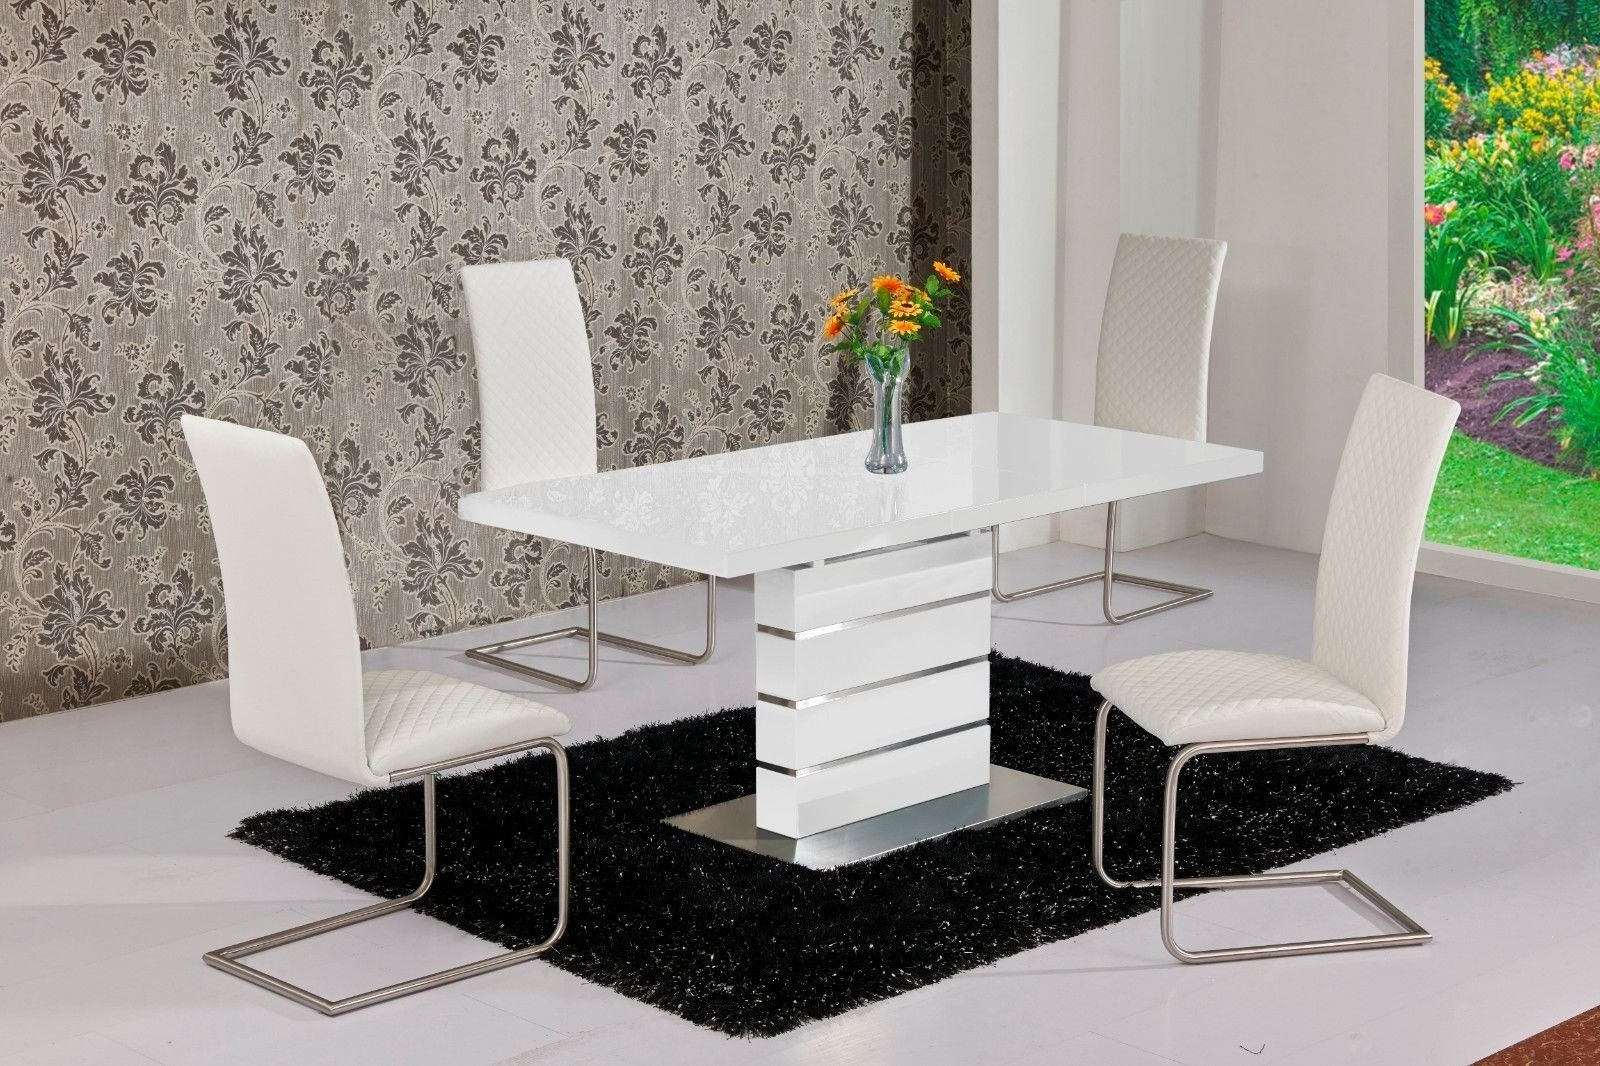 Mace High Gloss Extending 120 160 Dining Table & Chair Set – White Intended For 2018 High Gloss Extending Dining Tables (View 1 of 25)